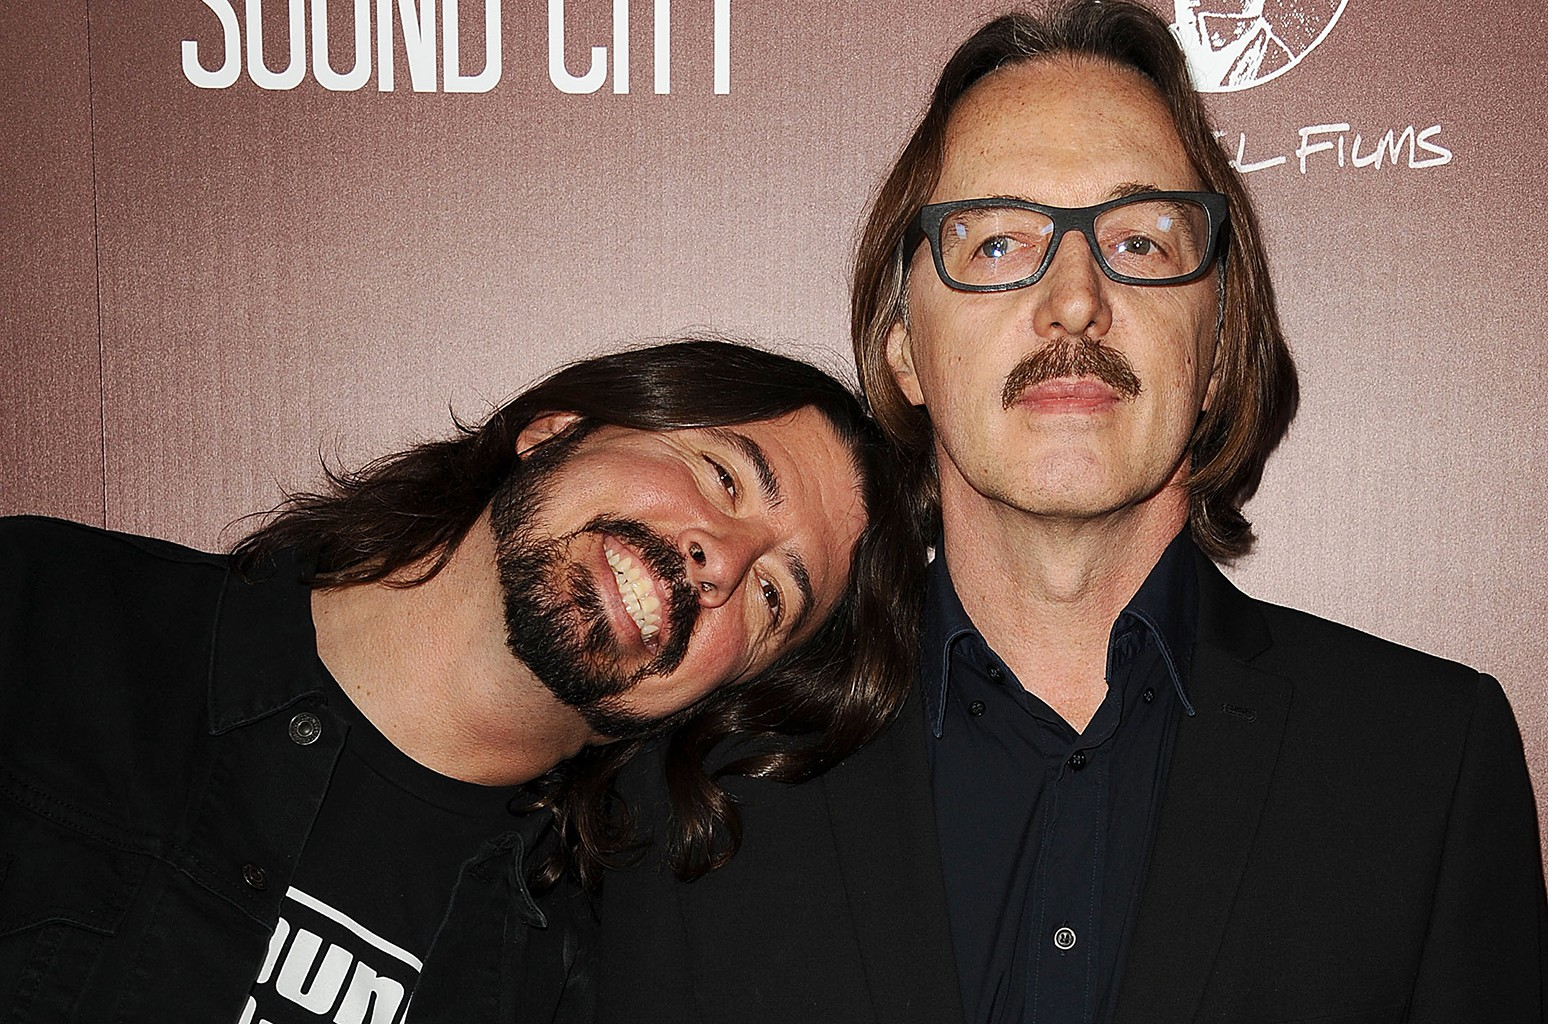 Dave Grohl and Butch Vig